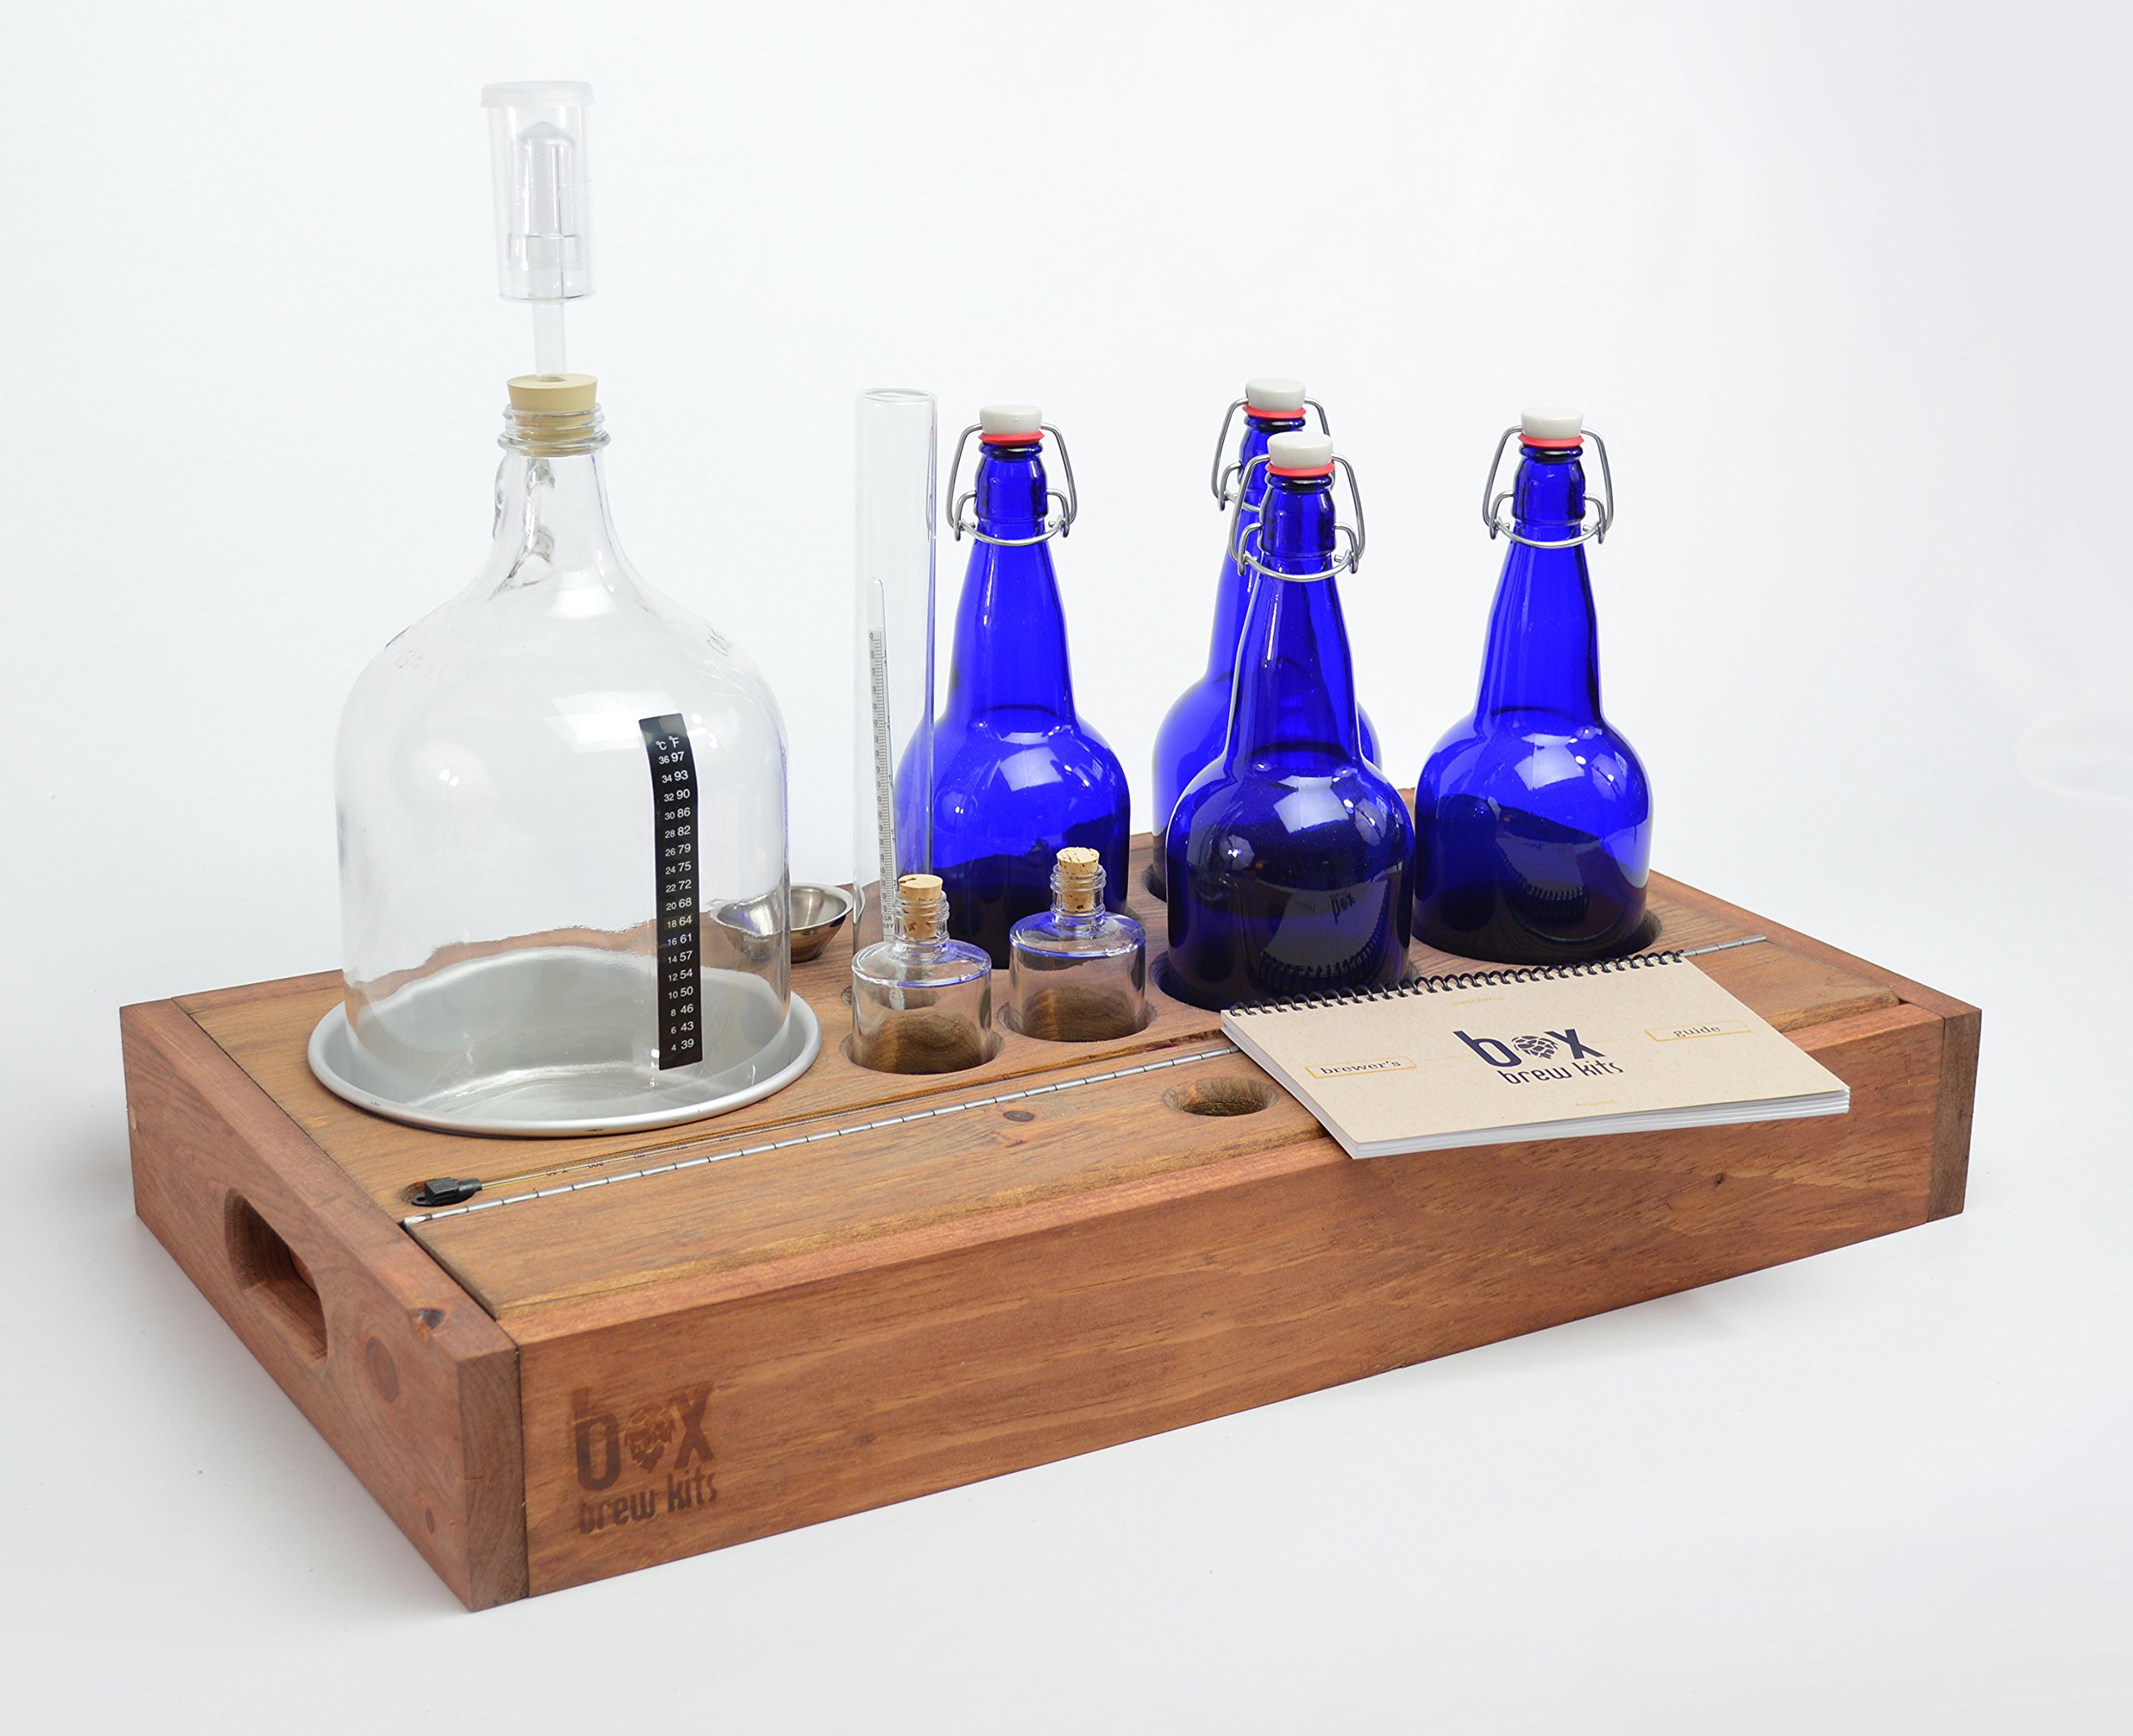 Handcrafted Small Batch Beer Making Home Brewing Kit with cobalt blue bottles